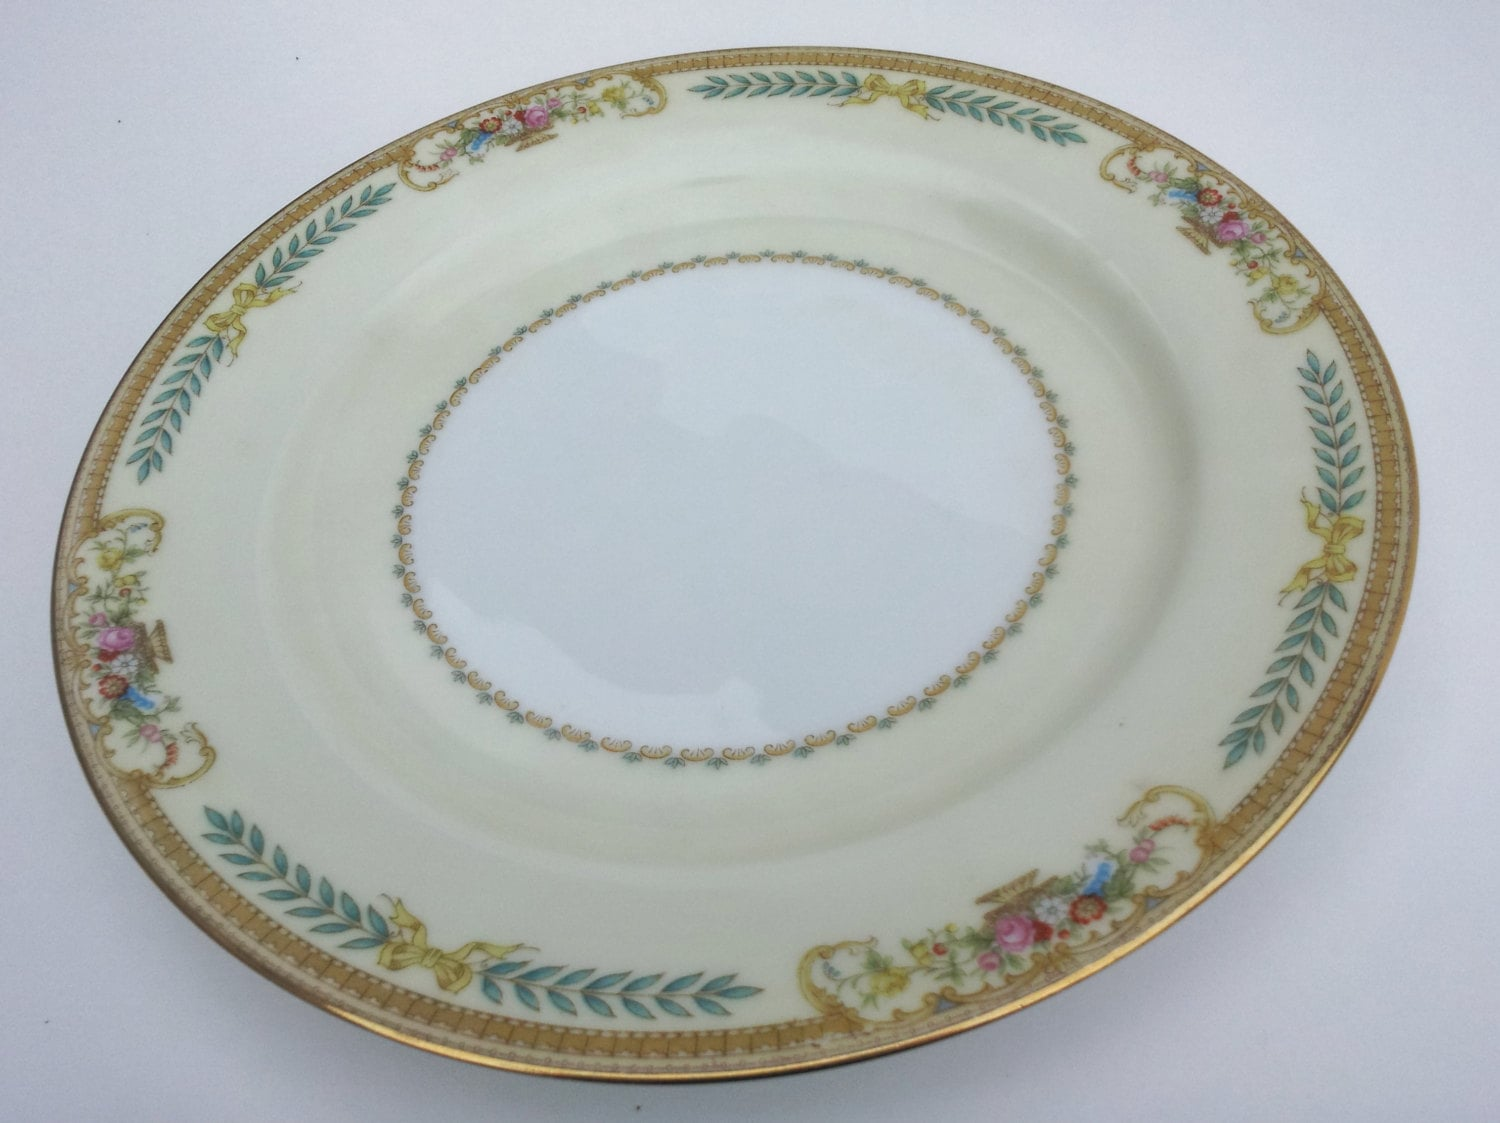 Vintage Noritake China Plate Pattern 3812 Tiara Luncheon White